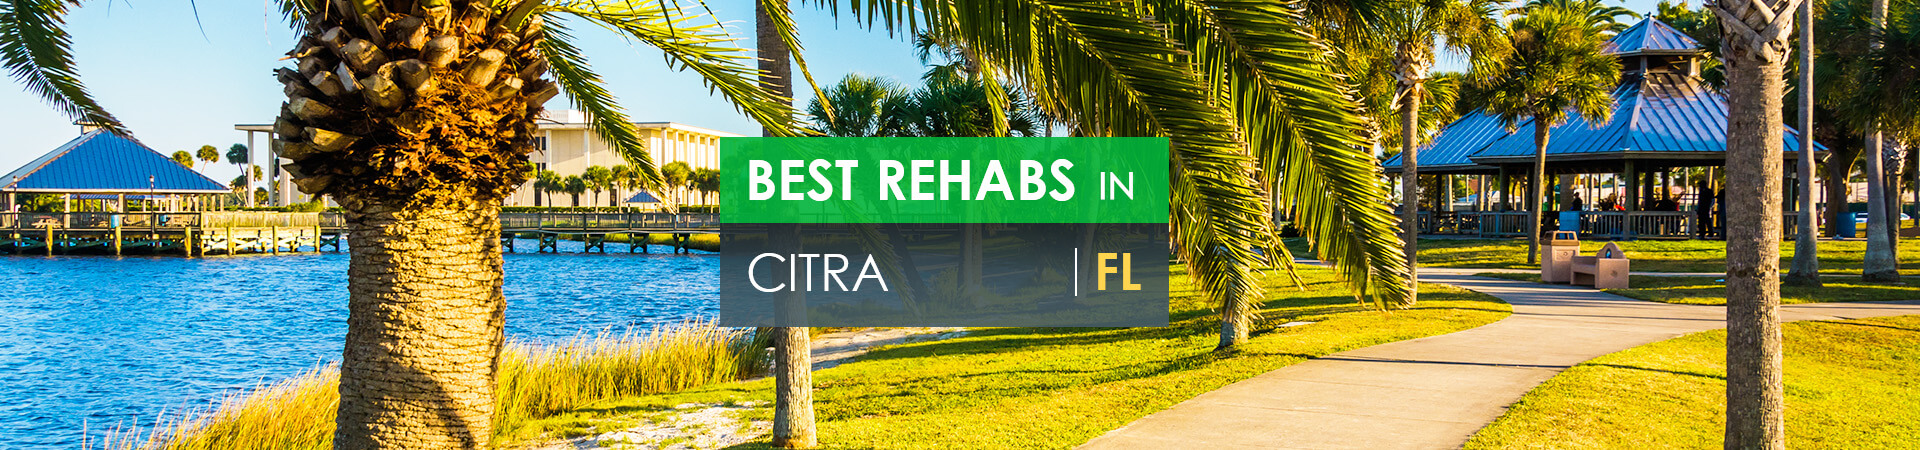 Best rehabs in Citra, FL